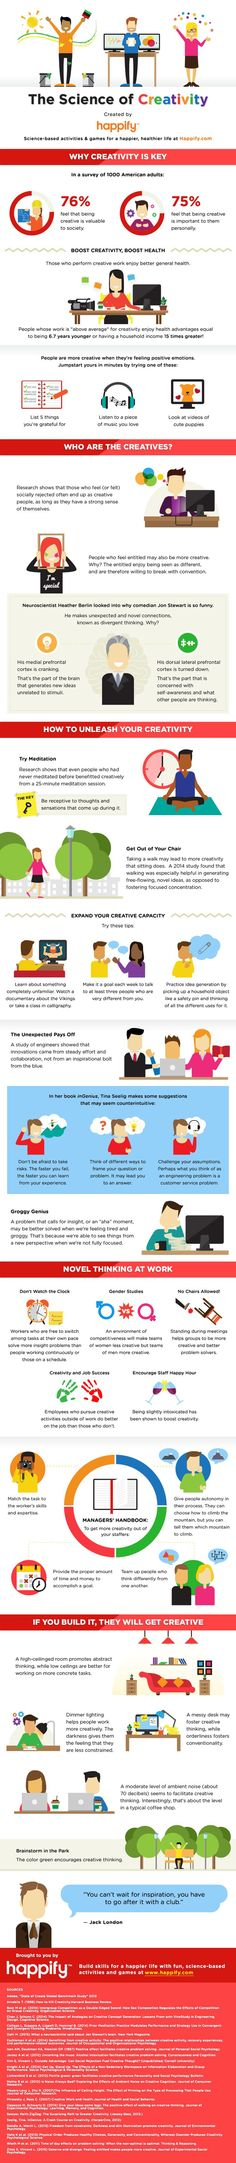 Business infographic : The best ways to tap into your inspiration and spur creativity on your next proj